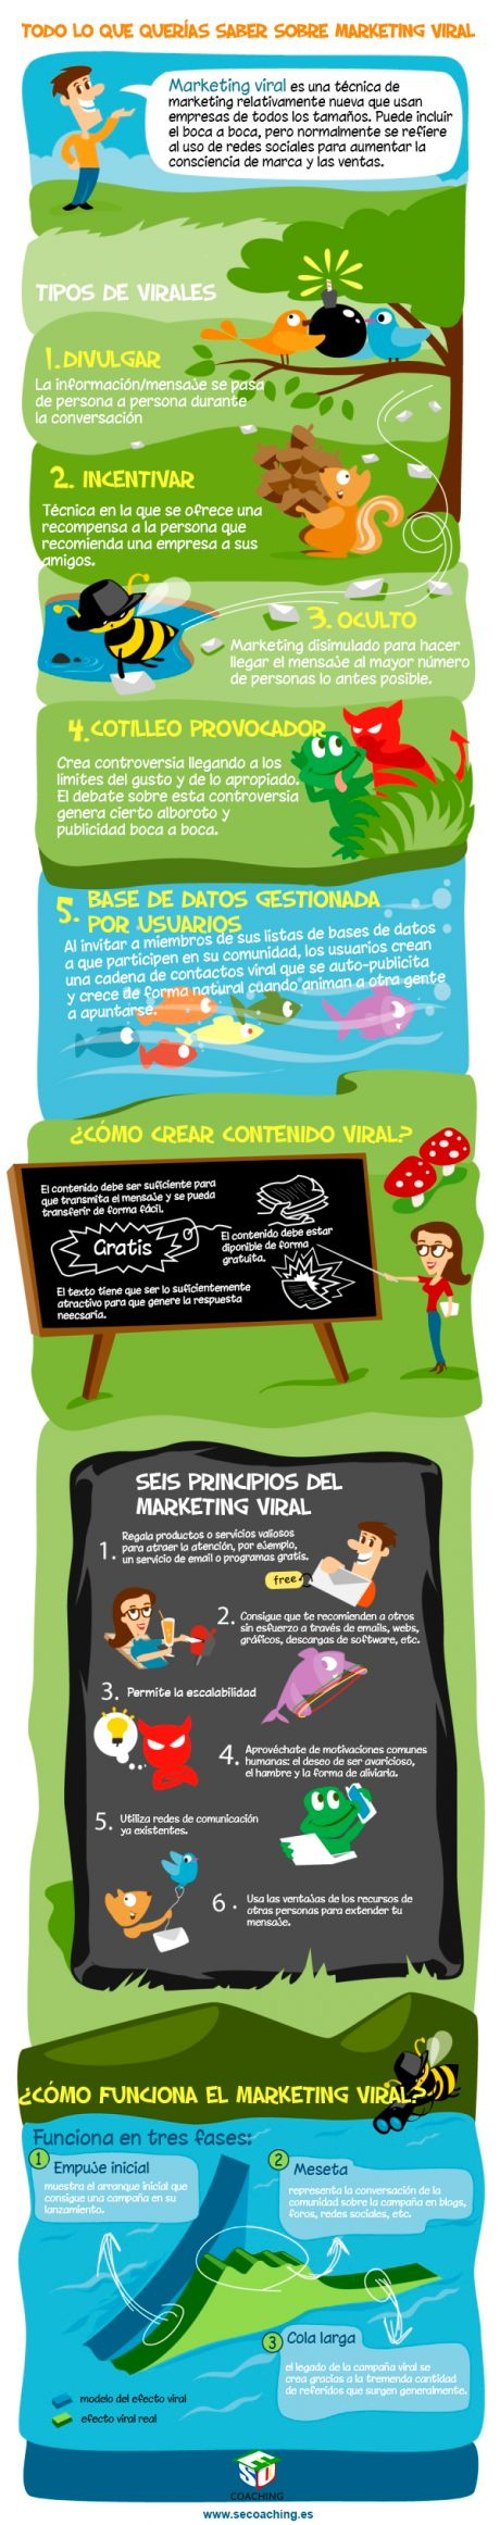 XXConoce aspectos claves del marketing viral #infografía